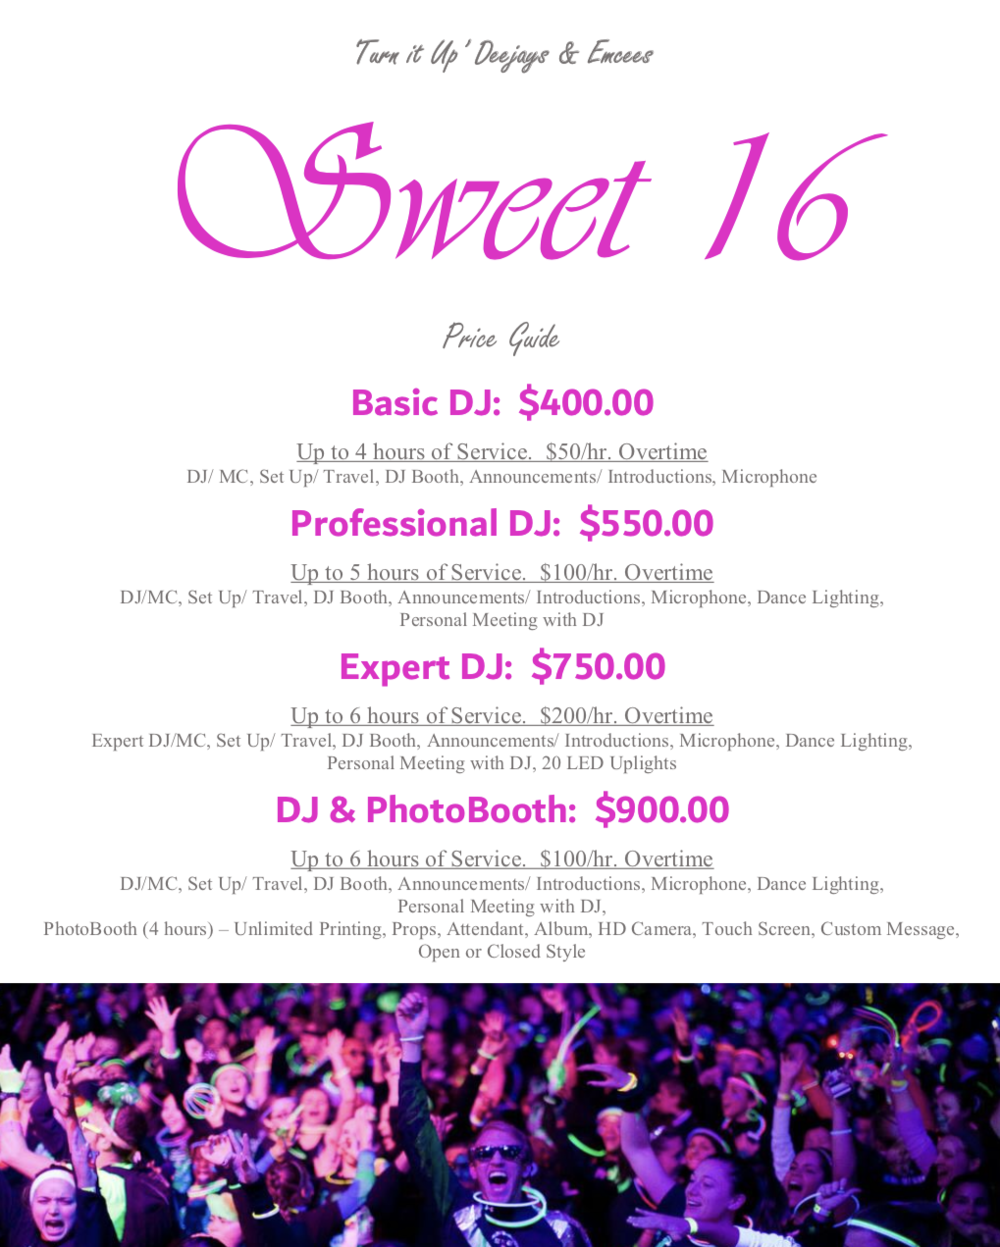 Sweet 16 Price Guide.png